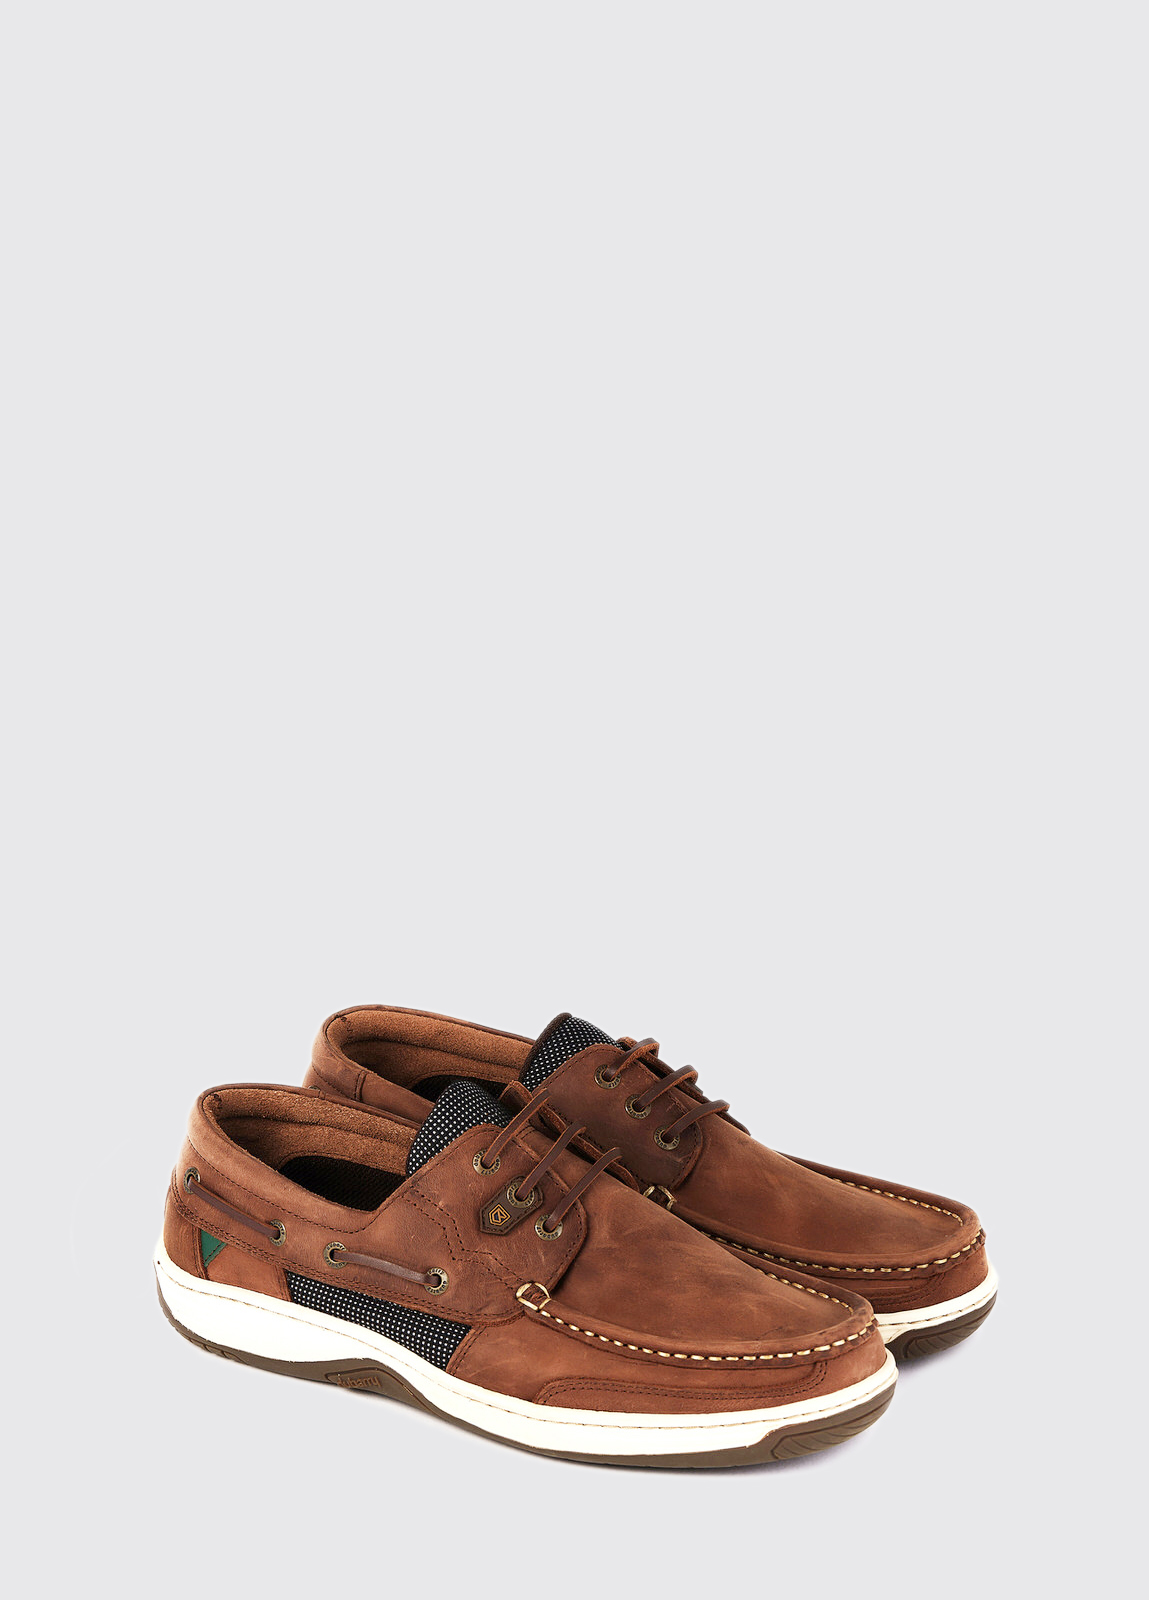 Regatta Deck Shoe - Chestnut